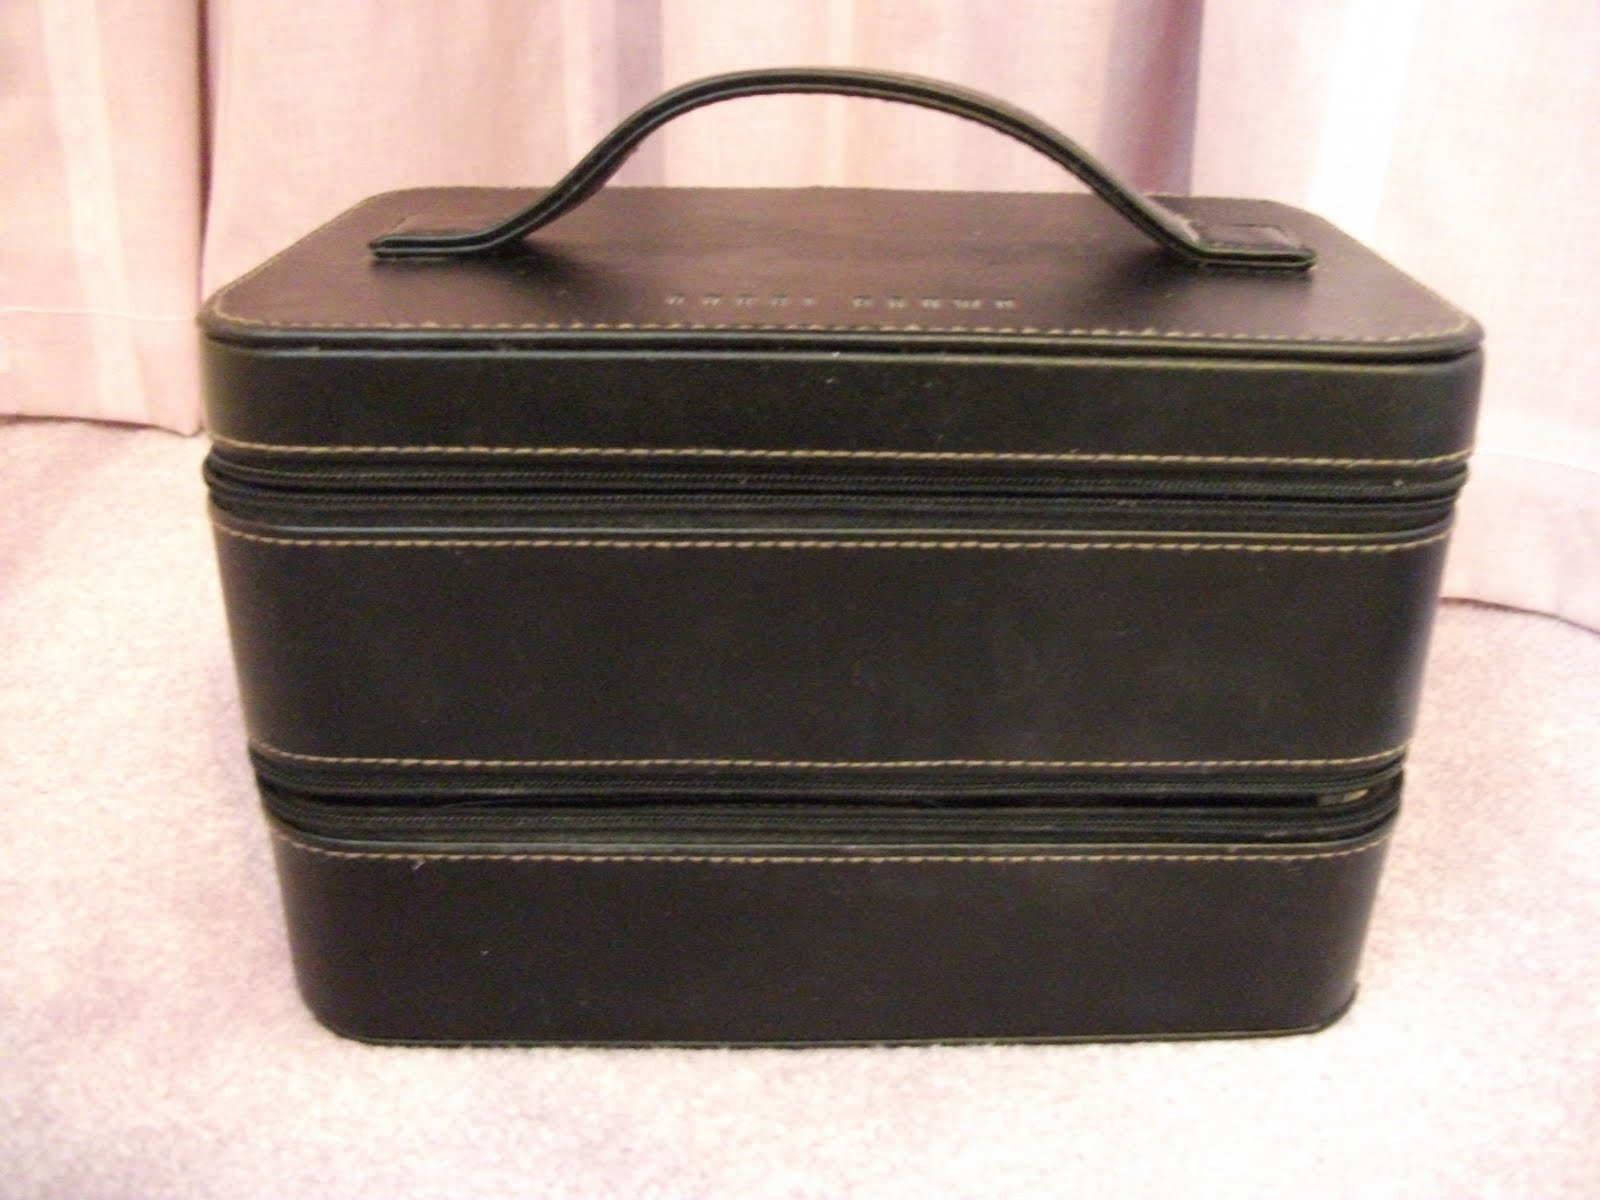 Nail Varnish Vanity Case | Splendid Wedding Company